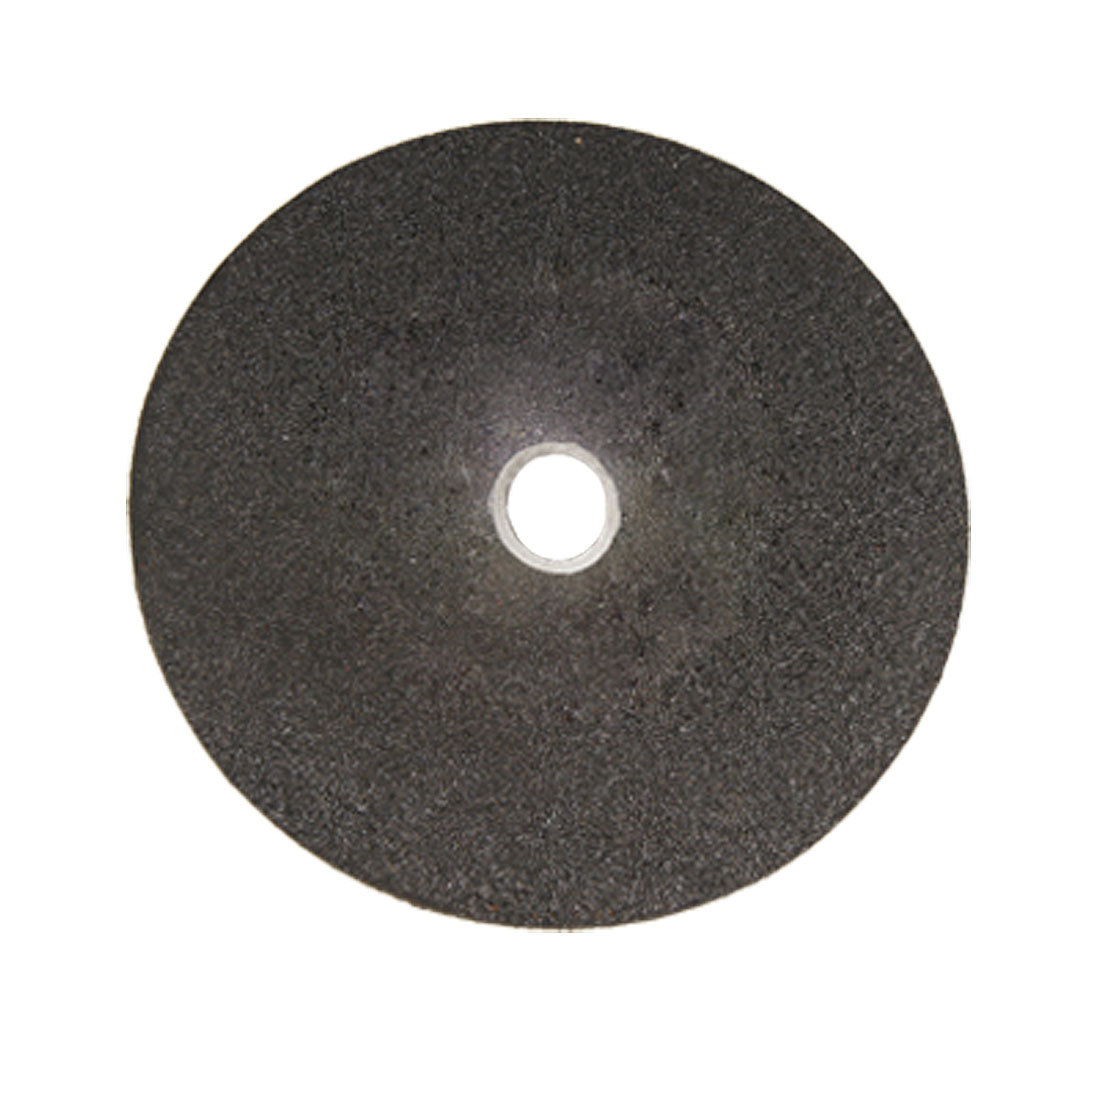 105mm Outside Dia 1mm Thick Grinding Wheel Polishing Disc for Metal